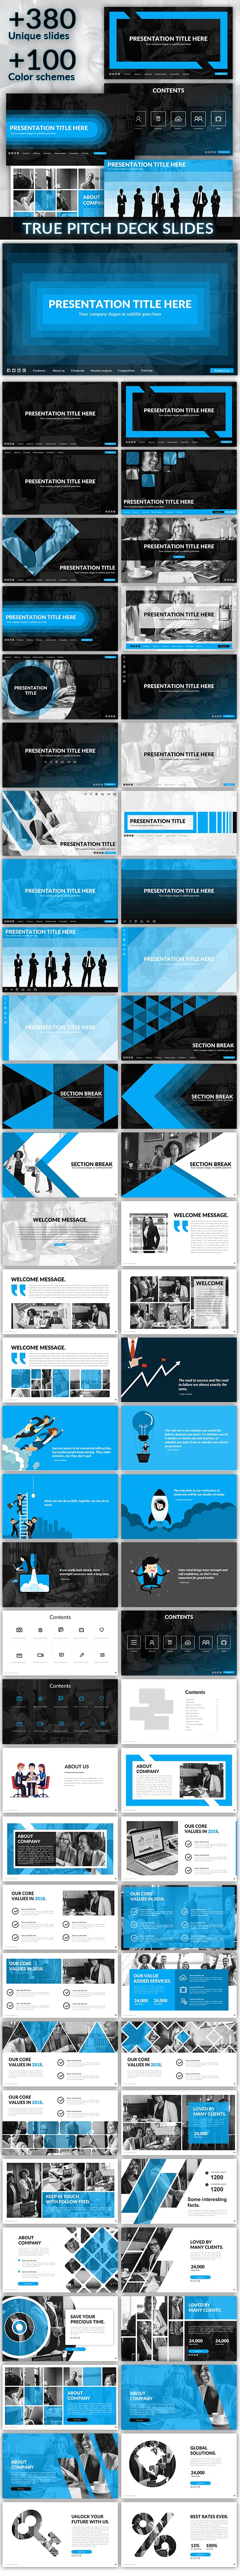 Interface - Pitch Deck Presentation Template - Pitch Deck PowerPoint Templates